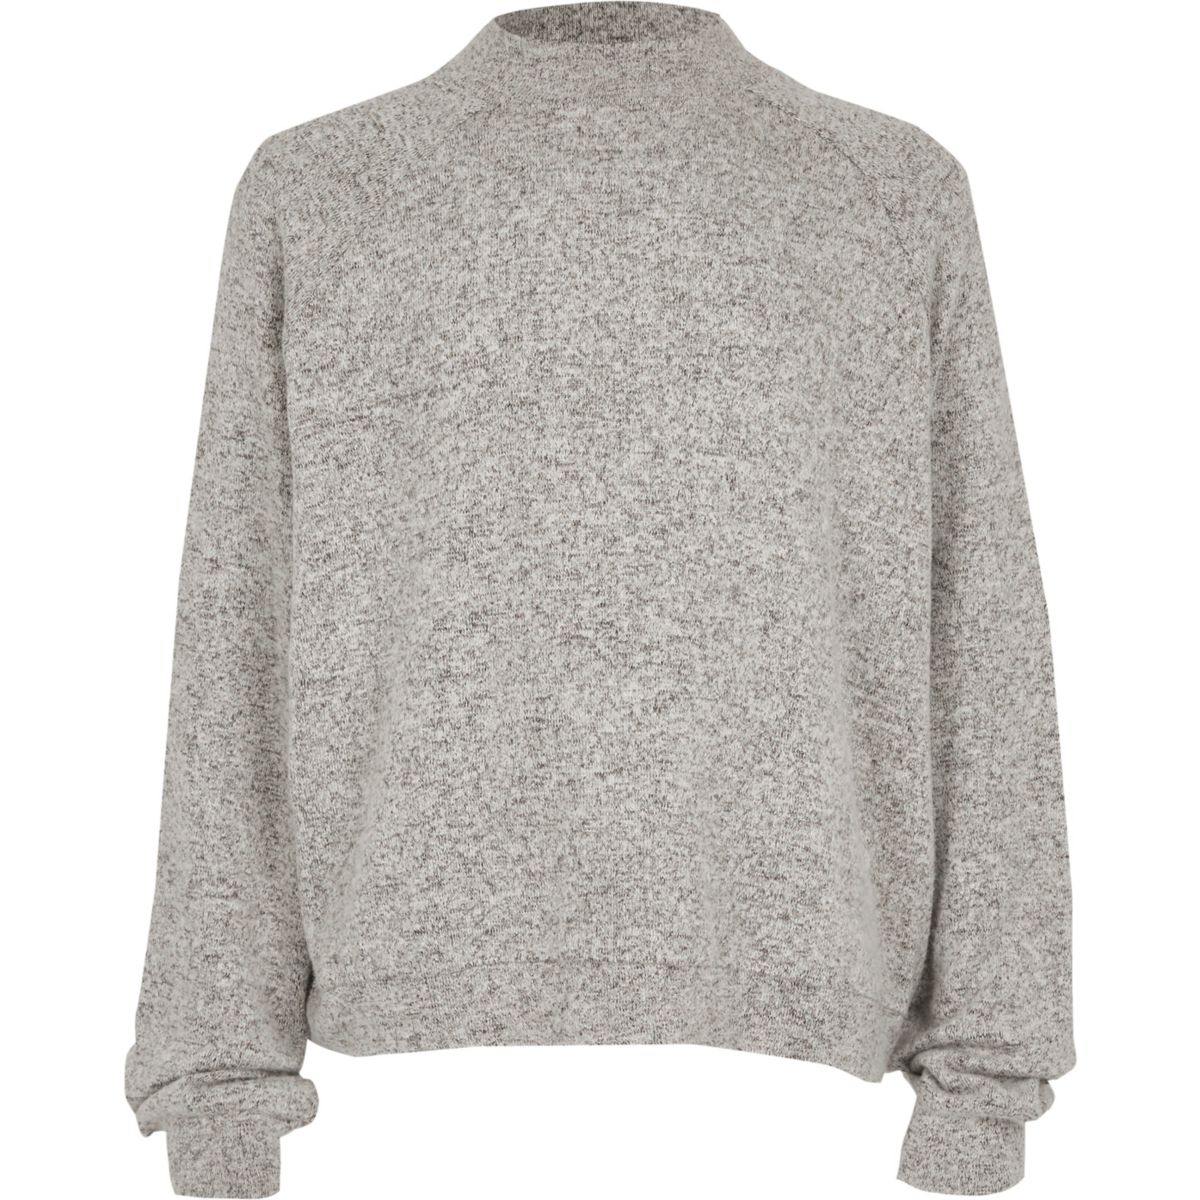 Girls grey high neck soft knit top